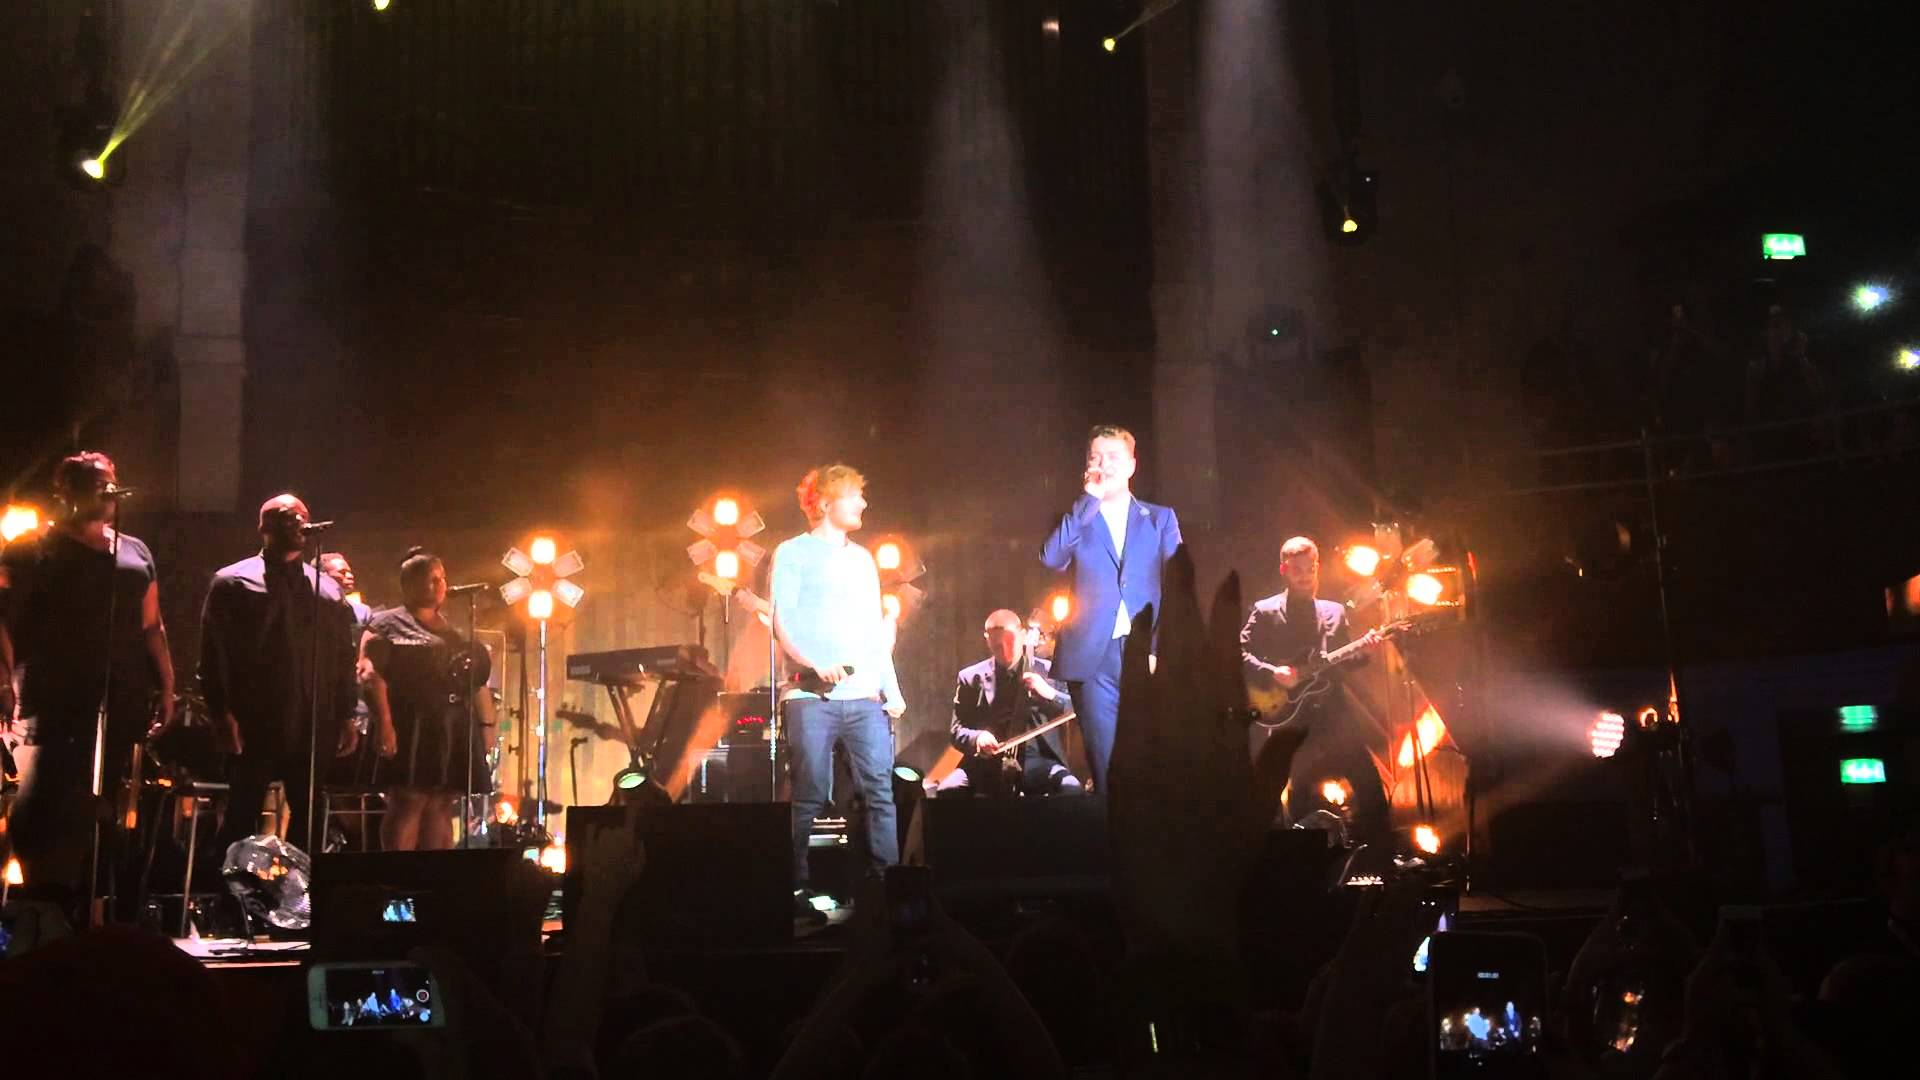 Ed Sheeran Joins Sam Smith To Sing Stay With Me